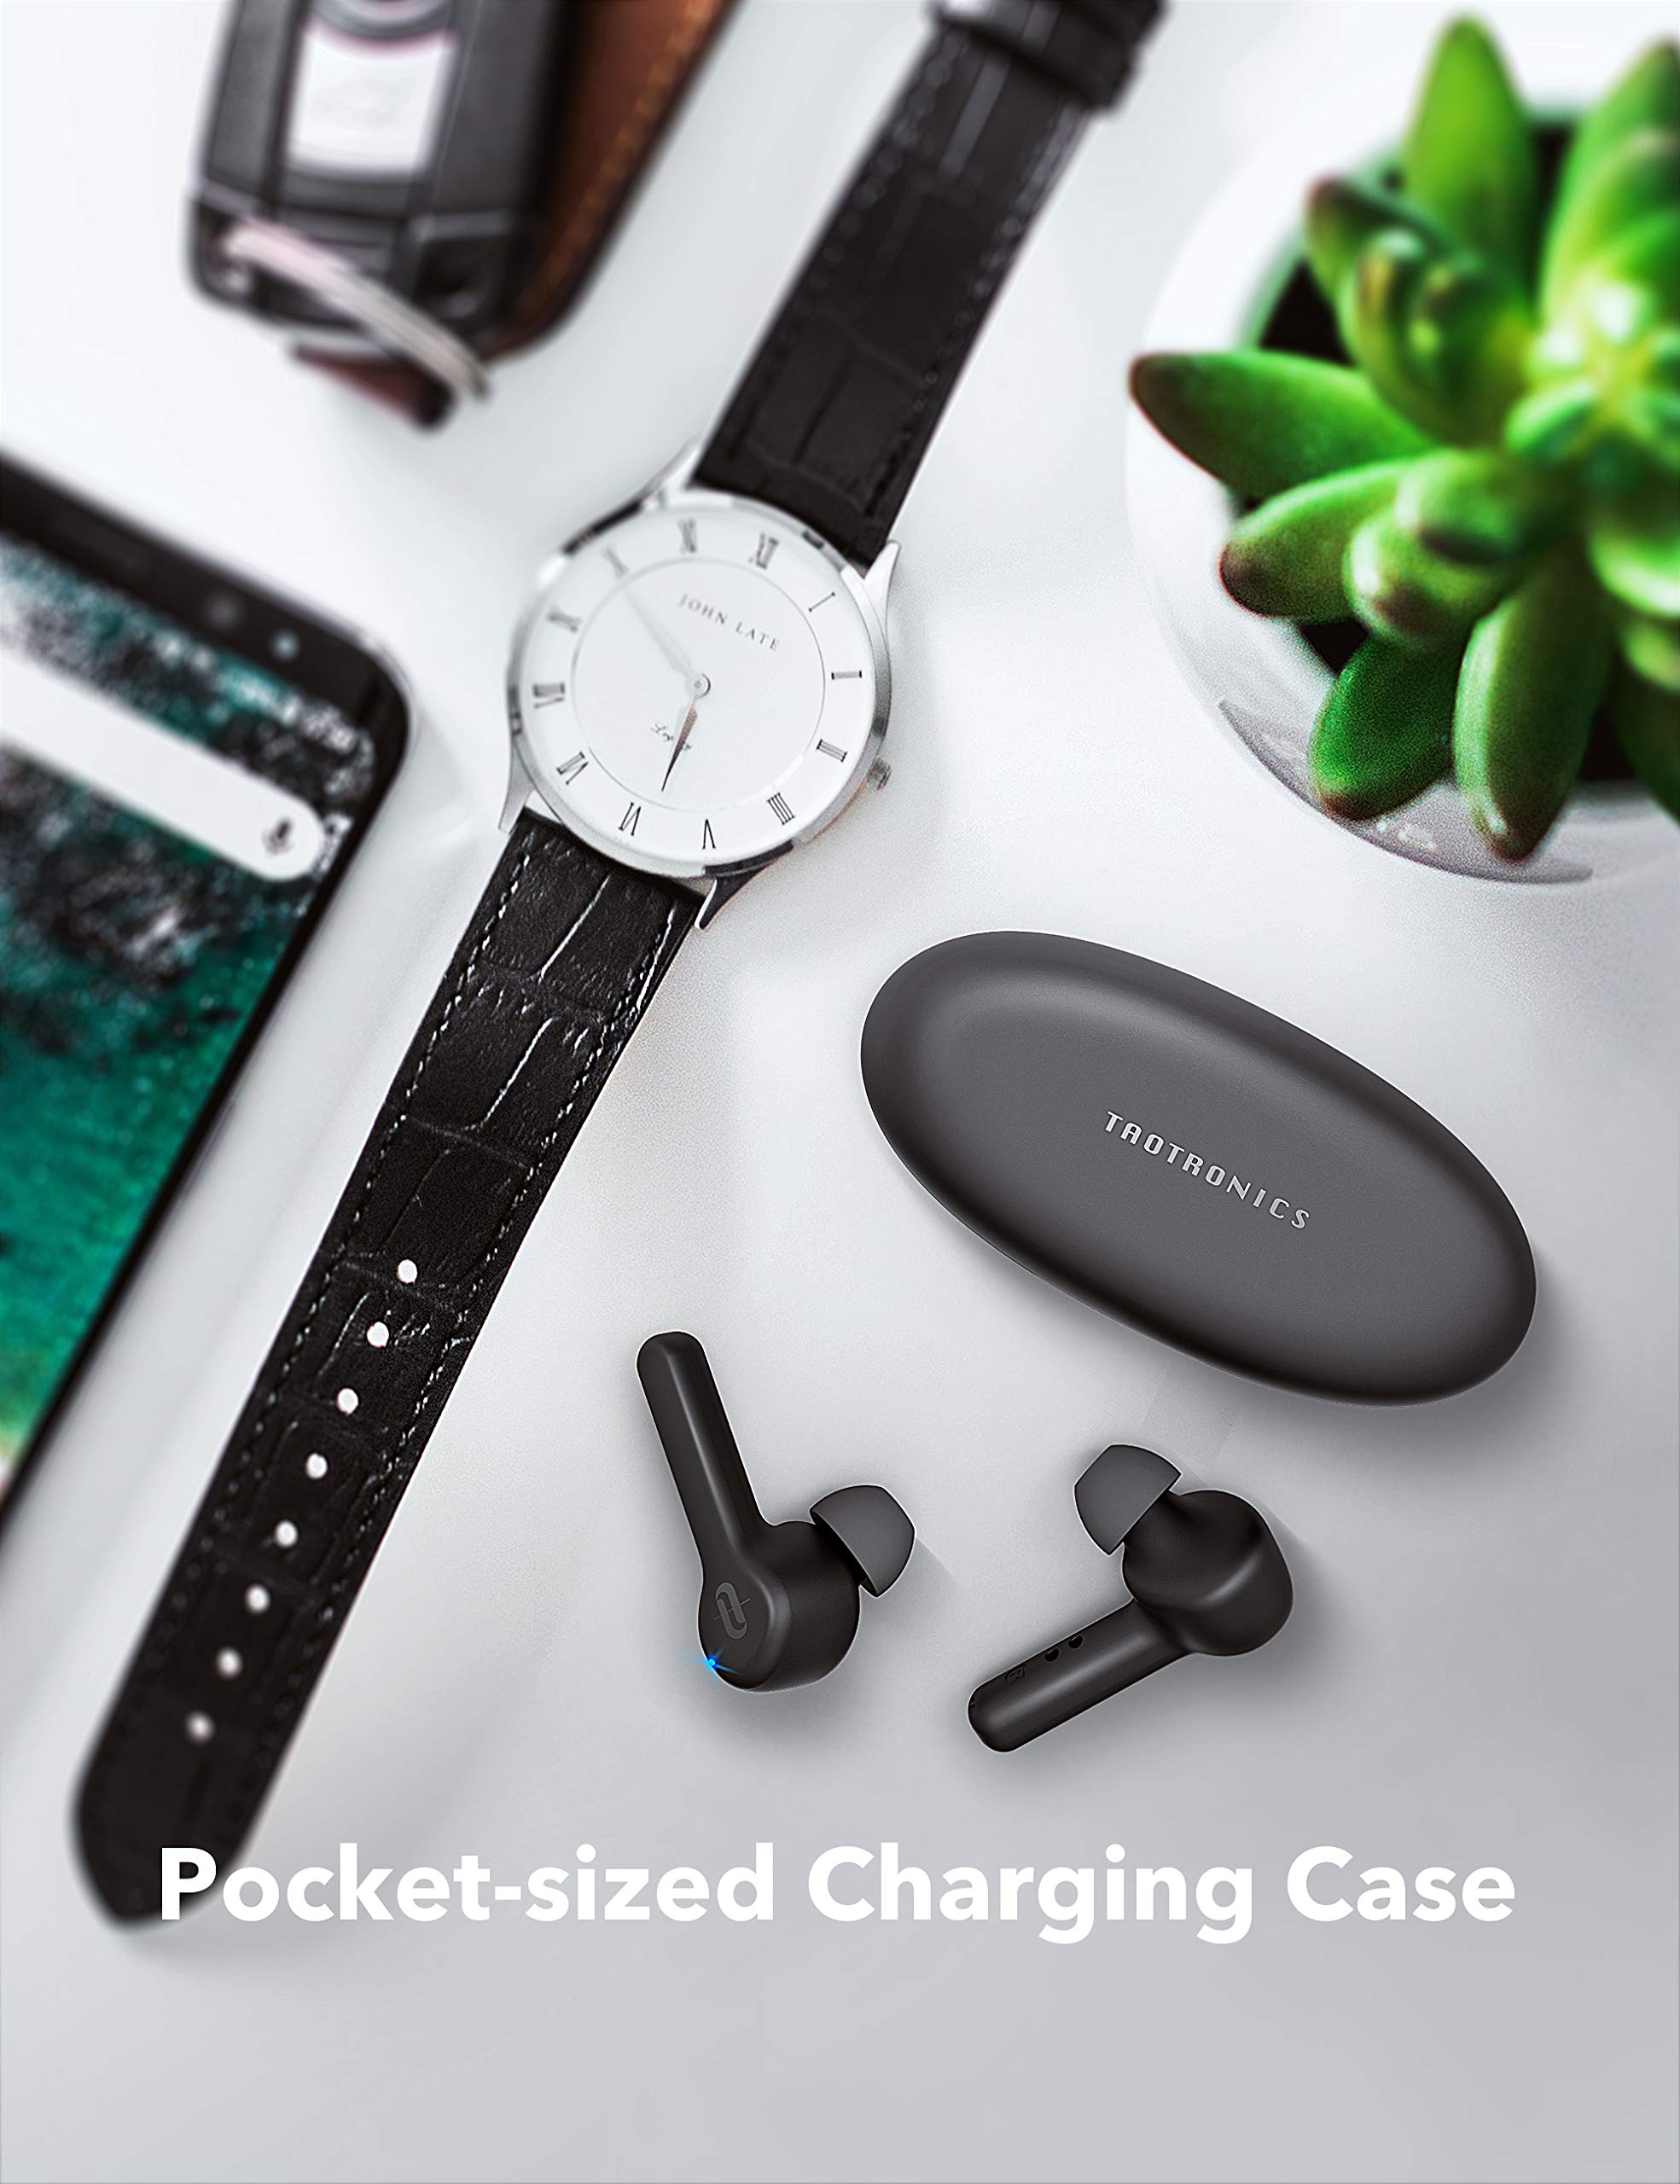 Wireless Earbuds, TaoTronics Bluetooth 5.0 Headphones SoundLiberty 53 in-Ear Earphones IPX7 Waterproof Smart Touch Control Bluetooth Earbuds Single/Twin Mode with Built-in Mic 40 H Playtime TT-BH053 by TaoTronics (Image #7)